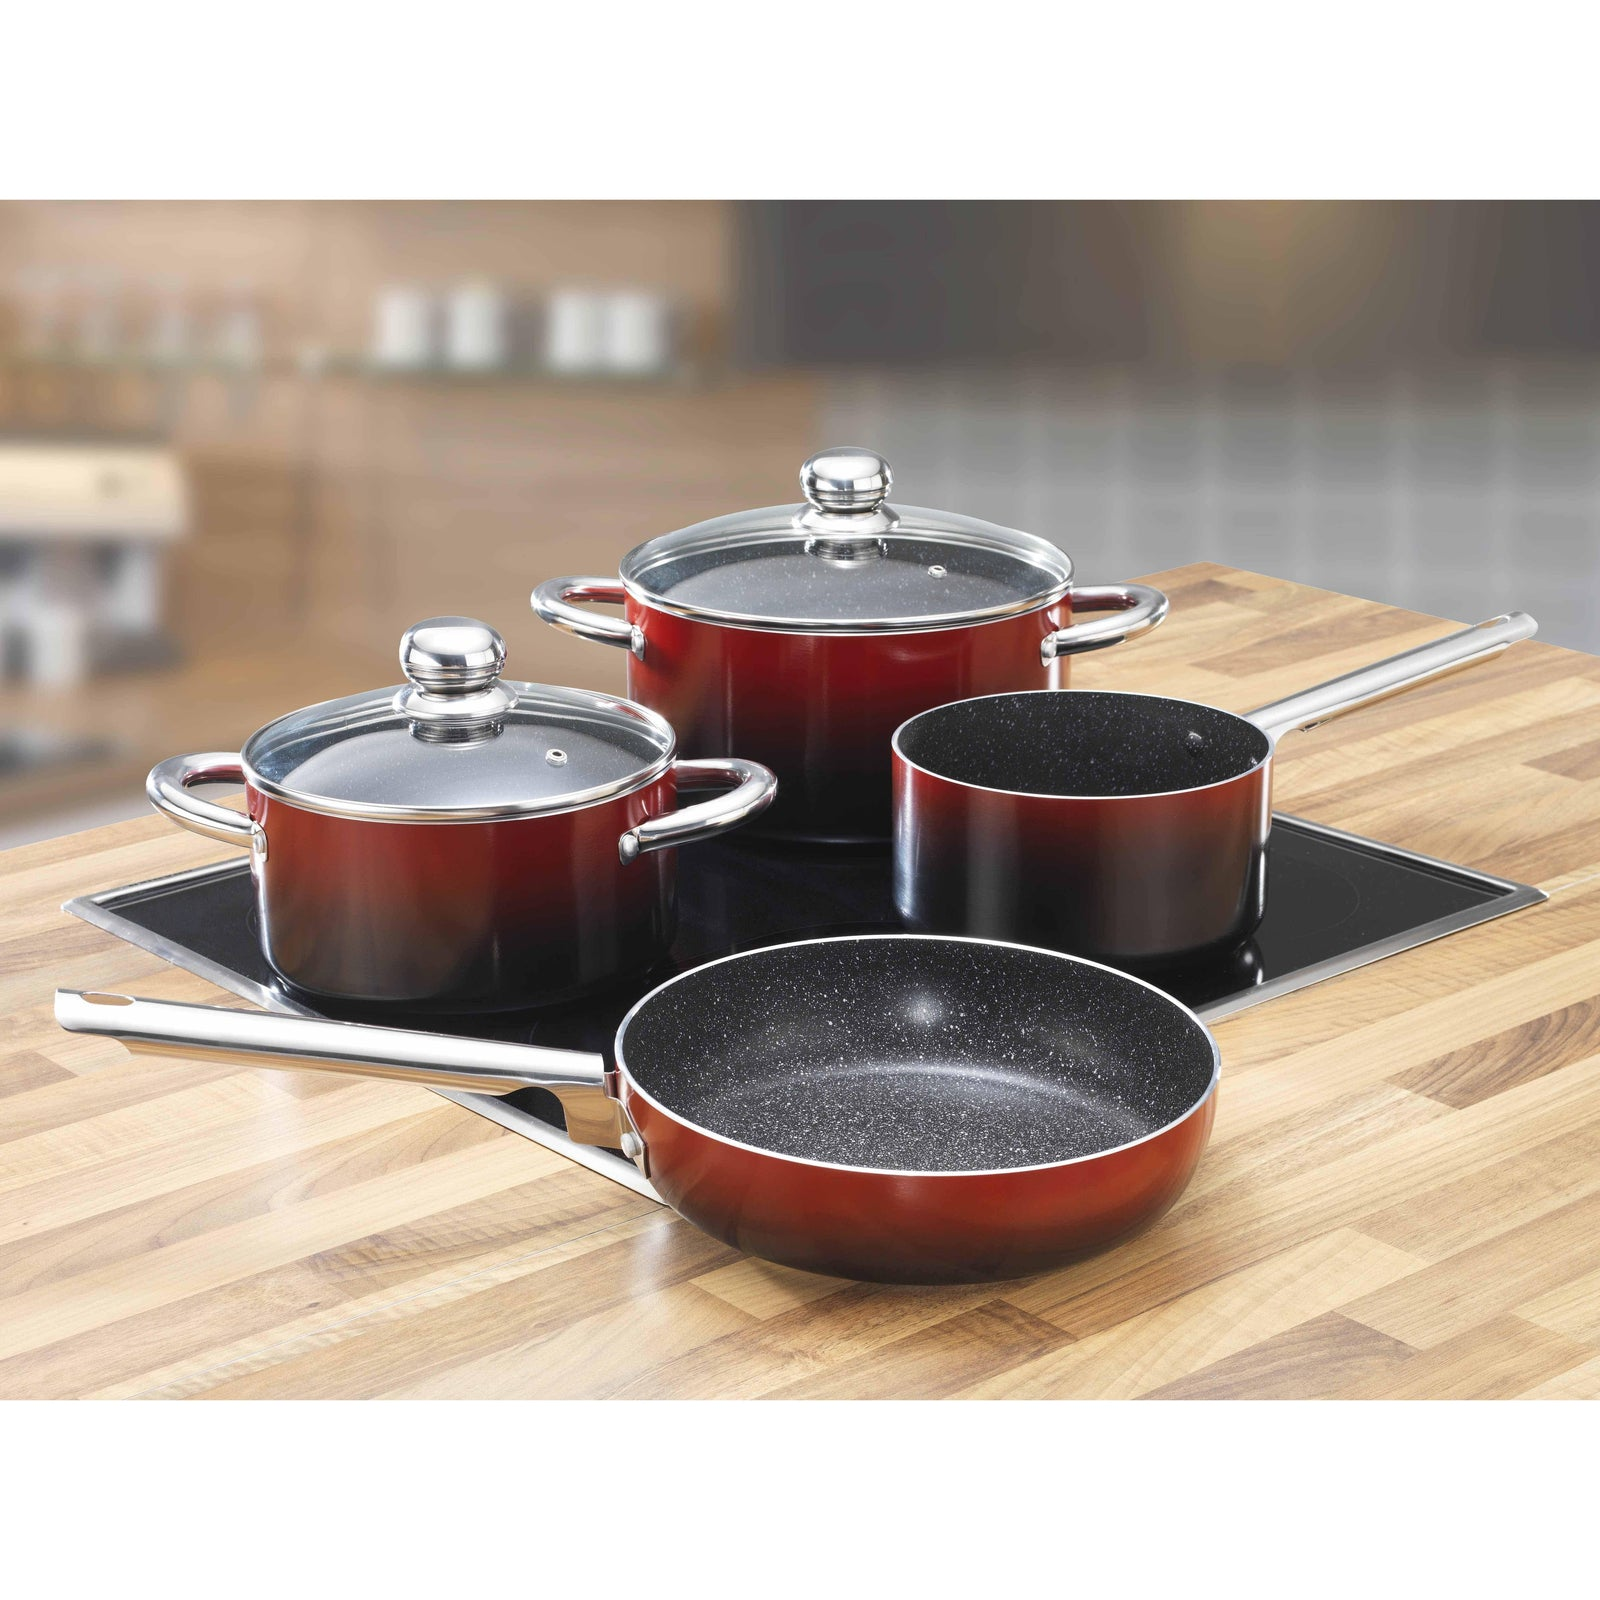 Stoneline® 6 Piece Set-Redfern.ent